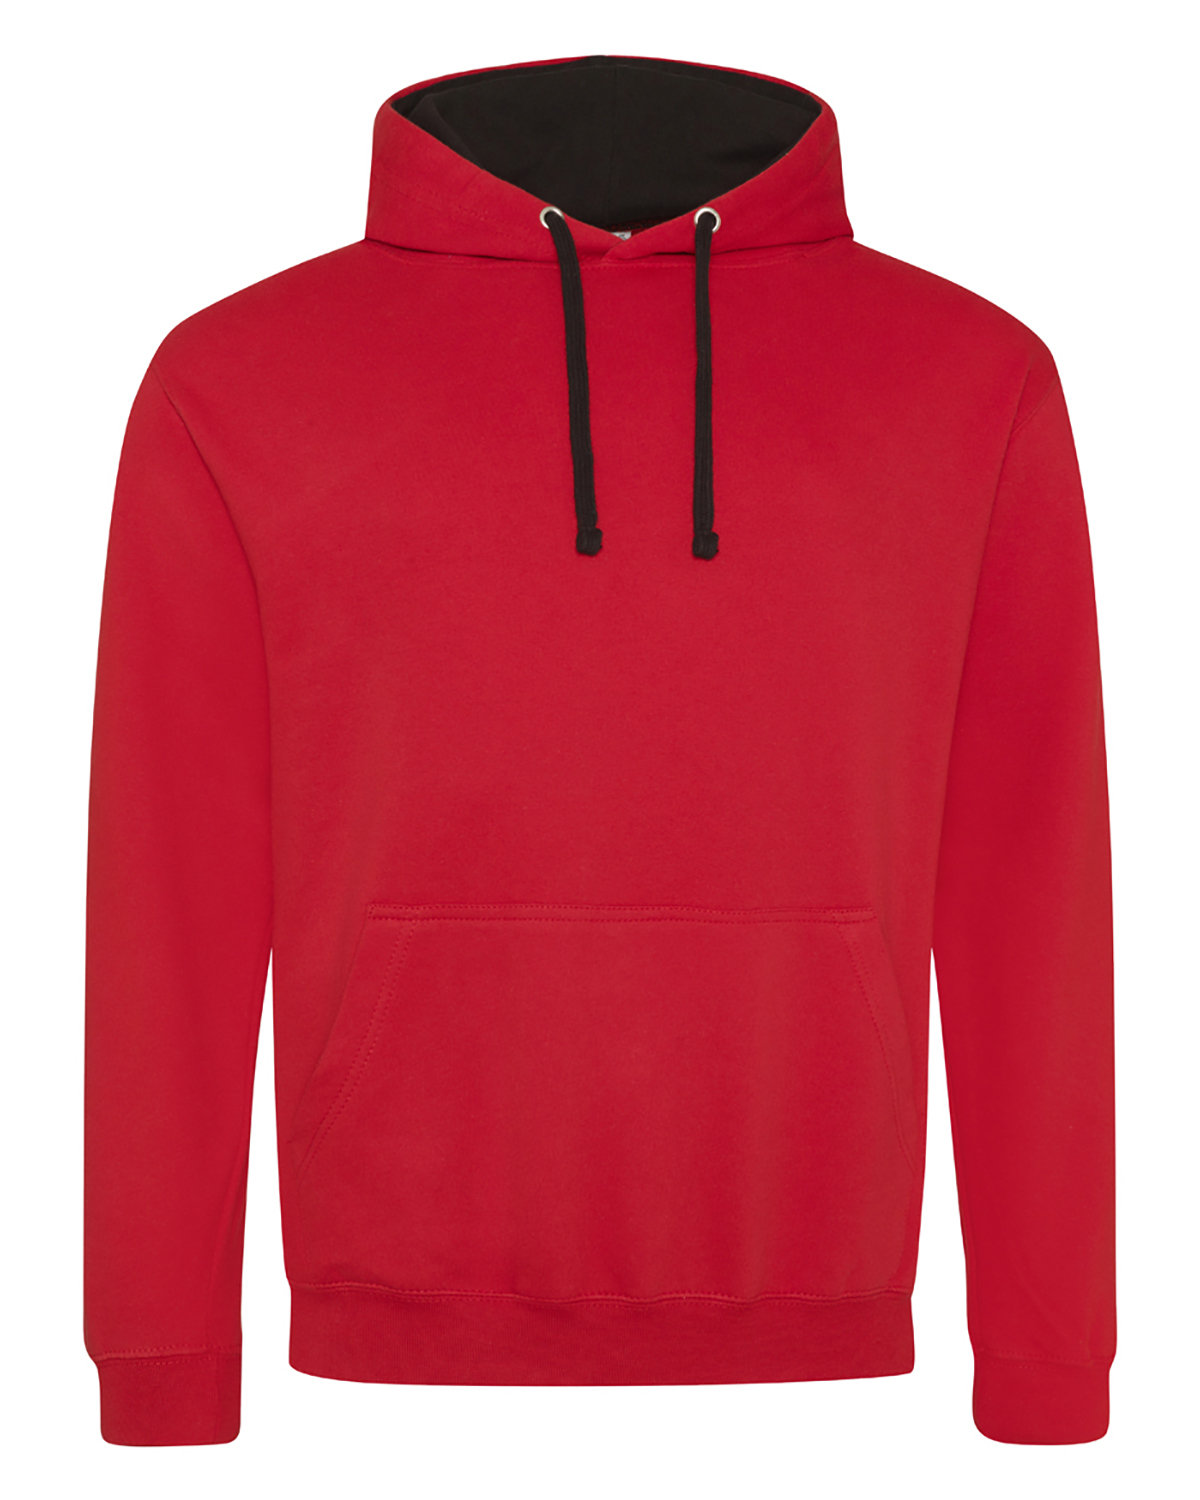 Just Hoods By AWDis Adult 80/20 Midweight Varsity Contrast Hooded Sweatshirt FIRE RD/ JET BLK